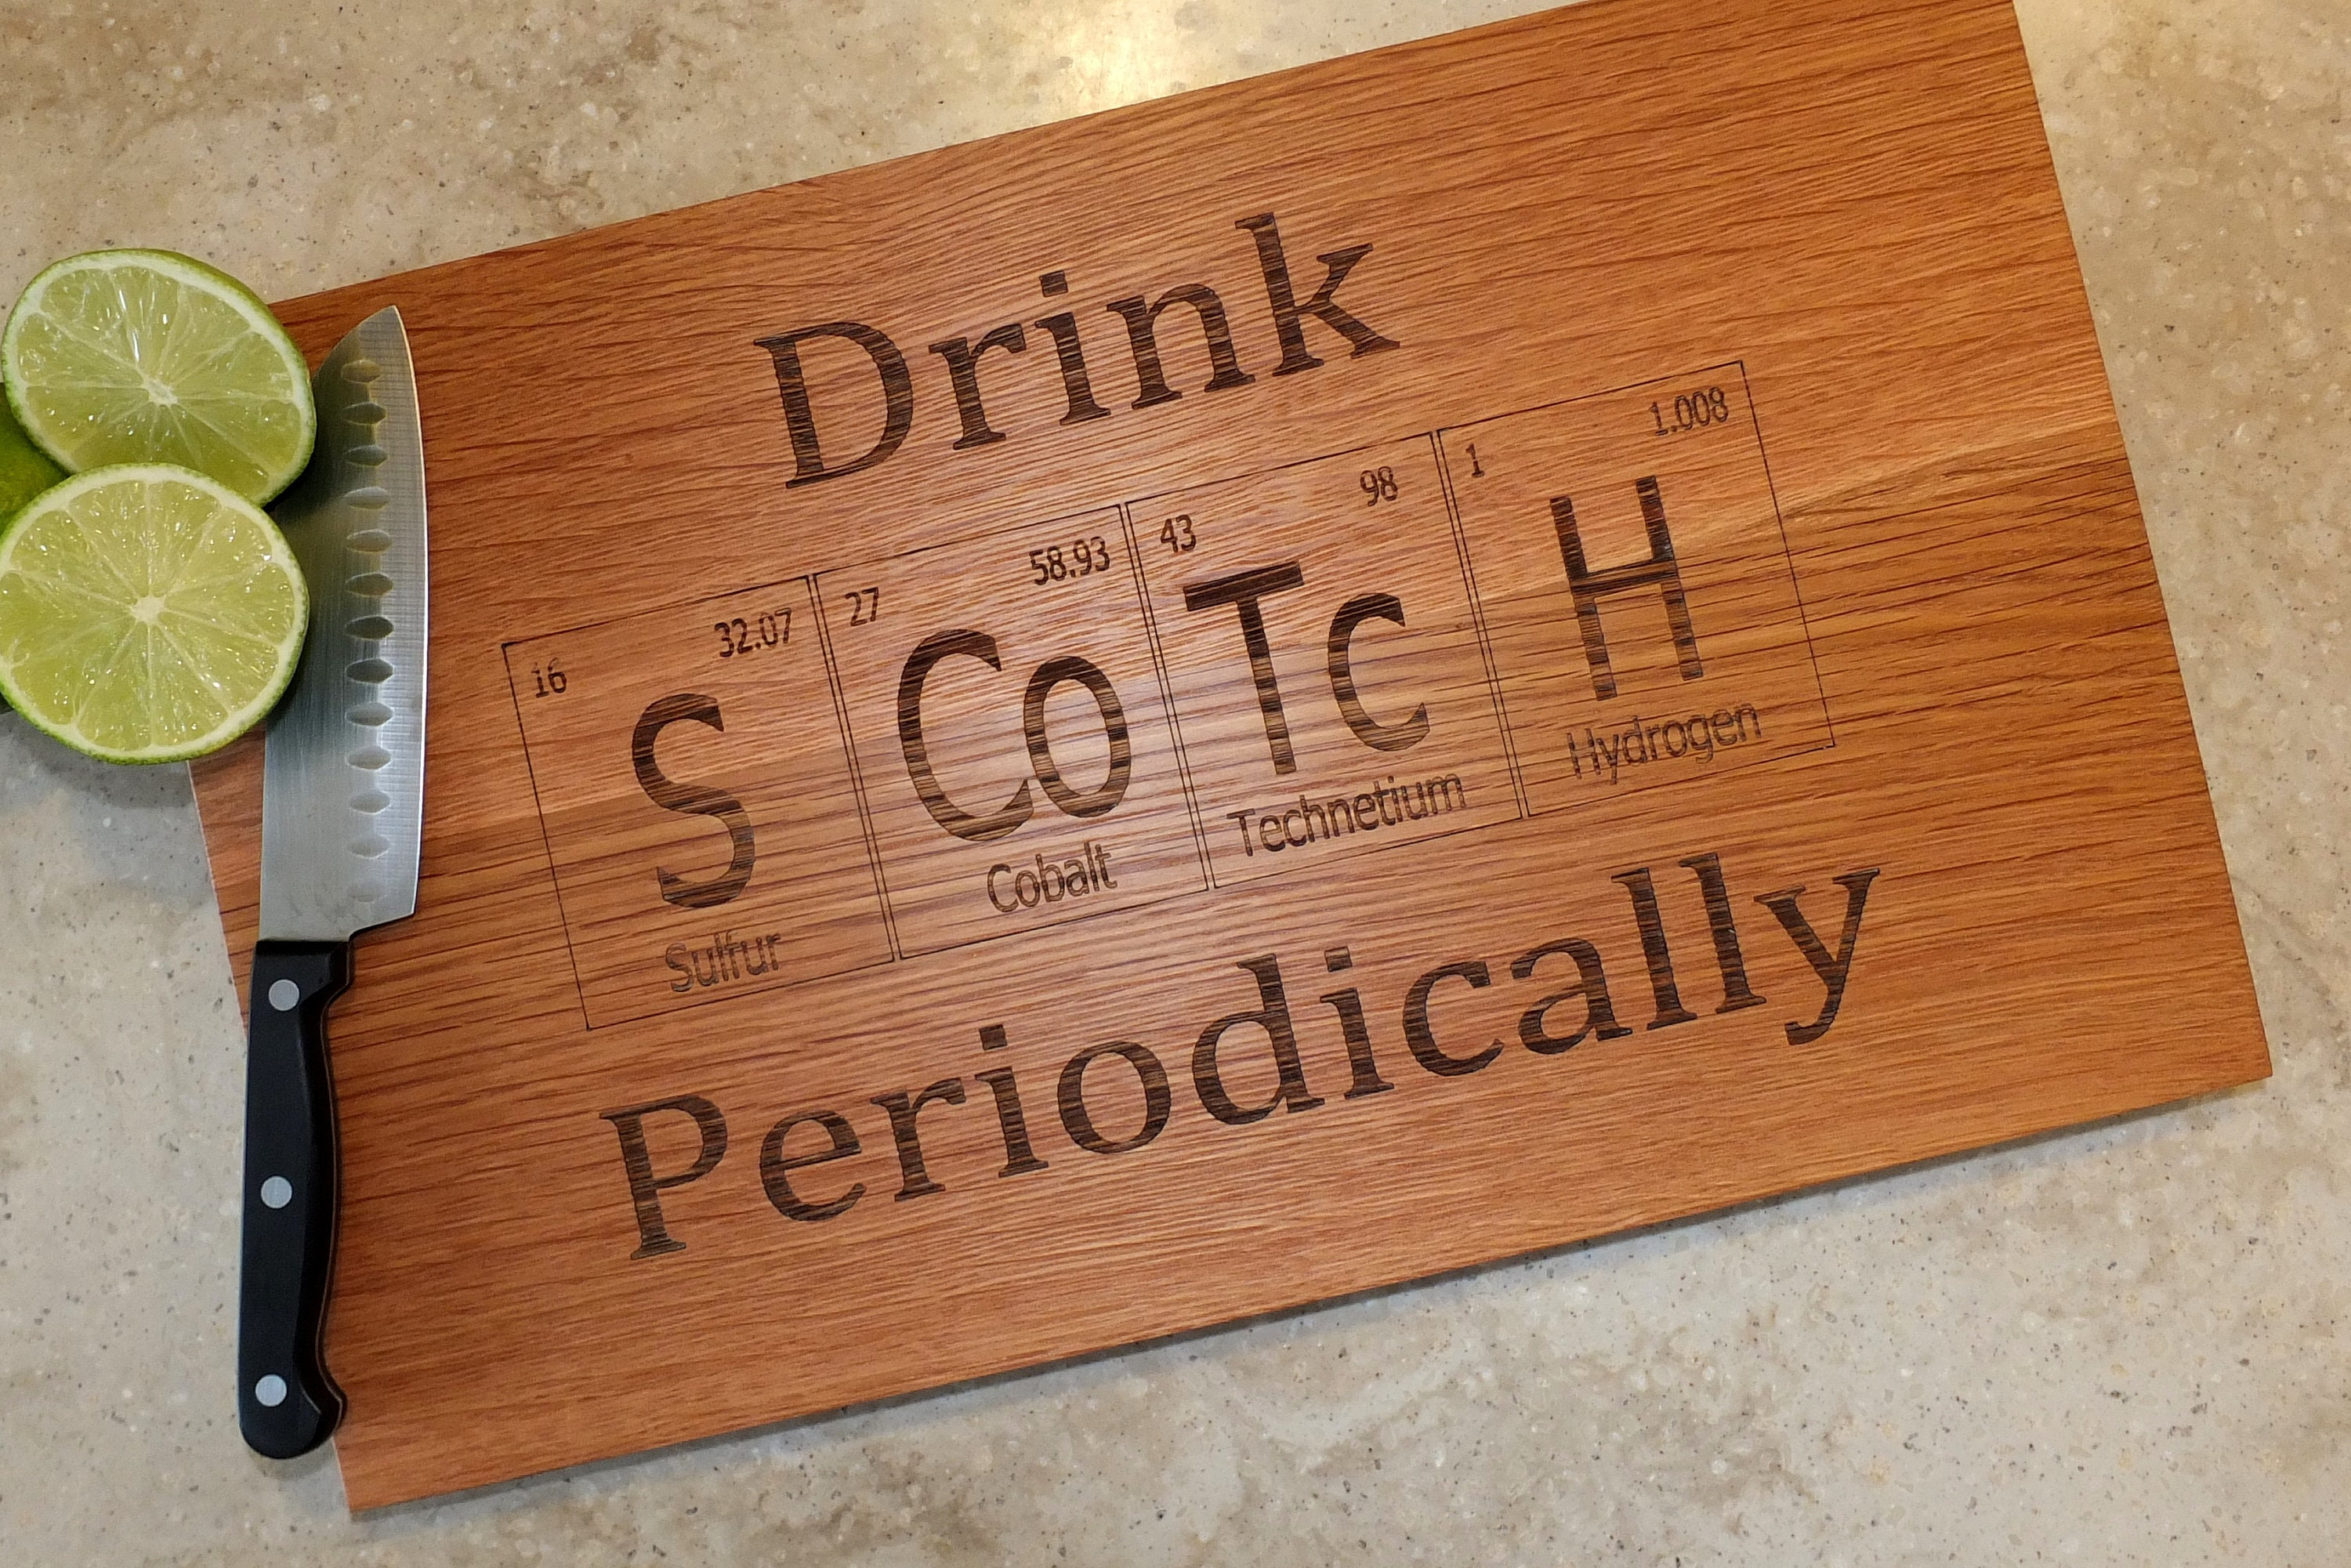 Drink scotch periodic table inspired cutting board engraved on maple drink scotch periodic table inspired cutting board engraved on maple walnut cherry or white oak wood bar kitchen housewarming gift urtaz Images